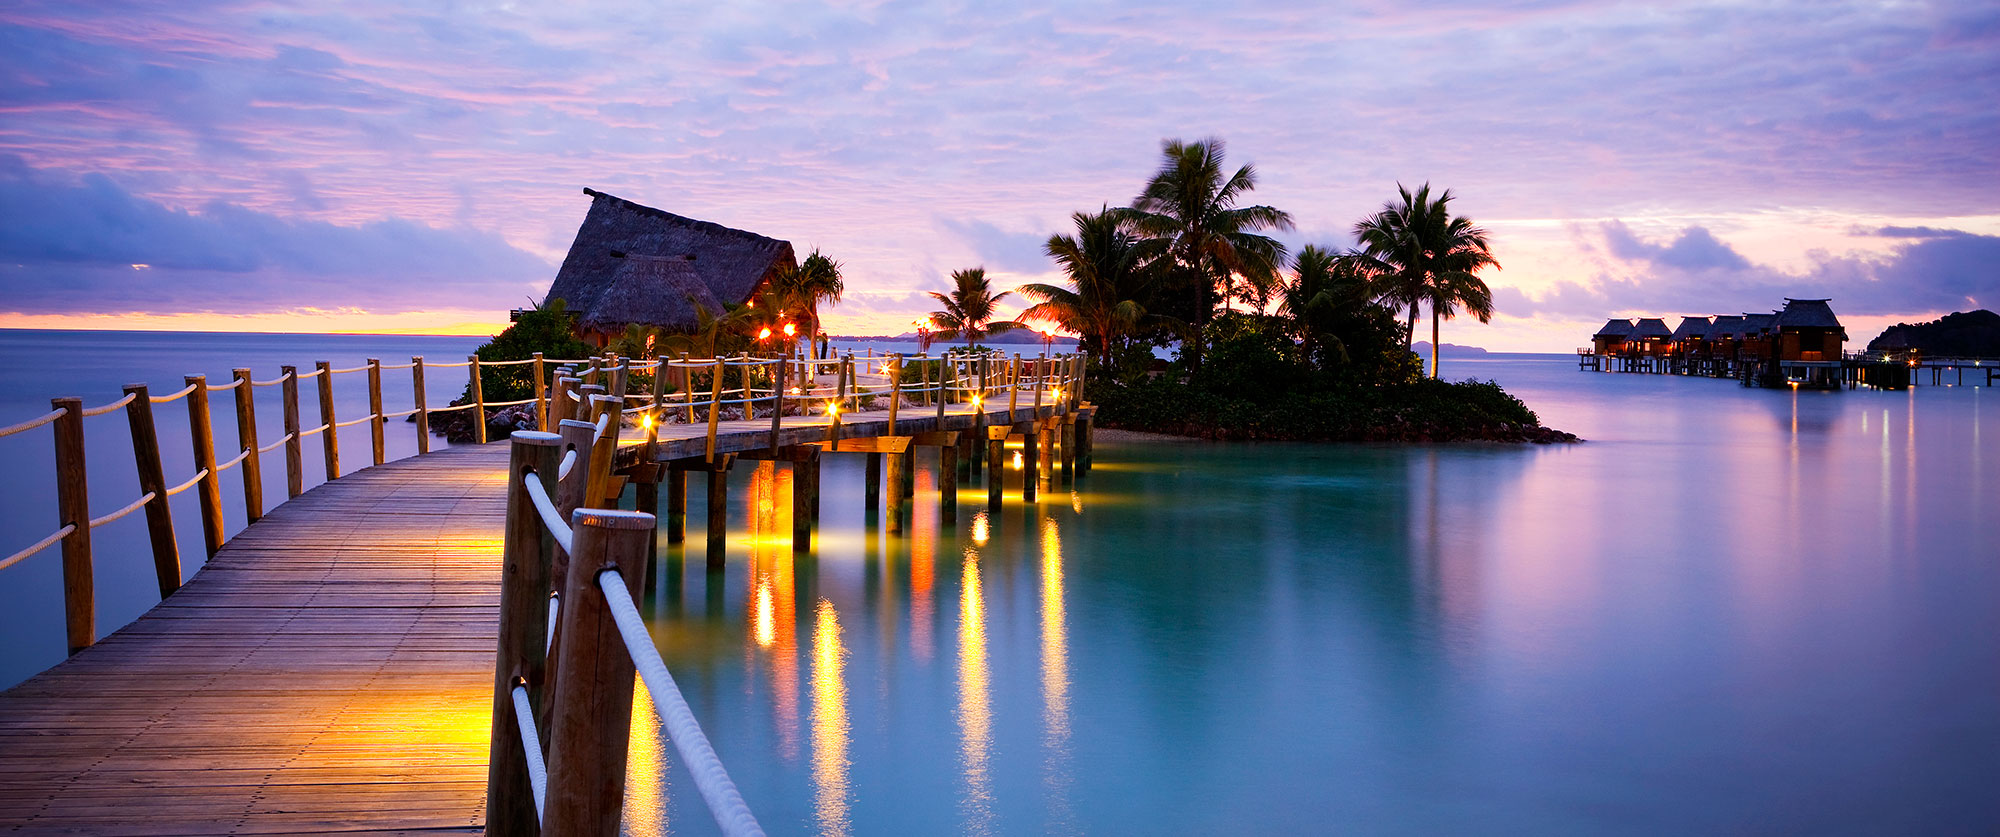 Fiji Overwater Bungalow Vacation Likuliku And Beaches